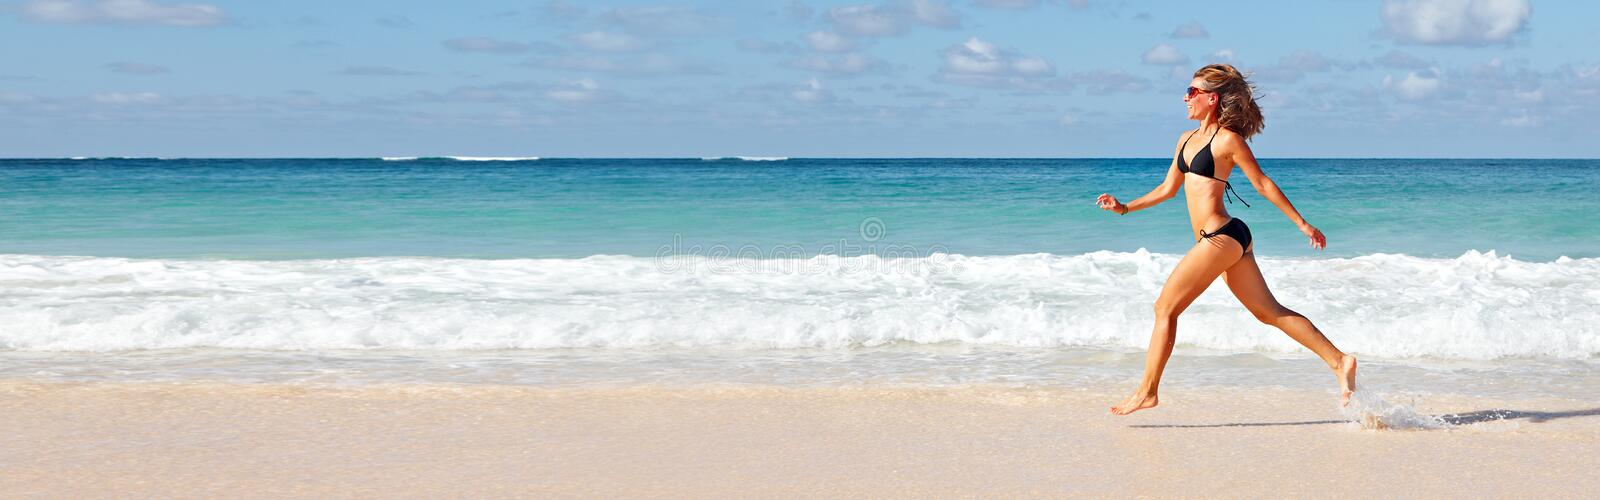 Woman running on the beach stock photo